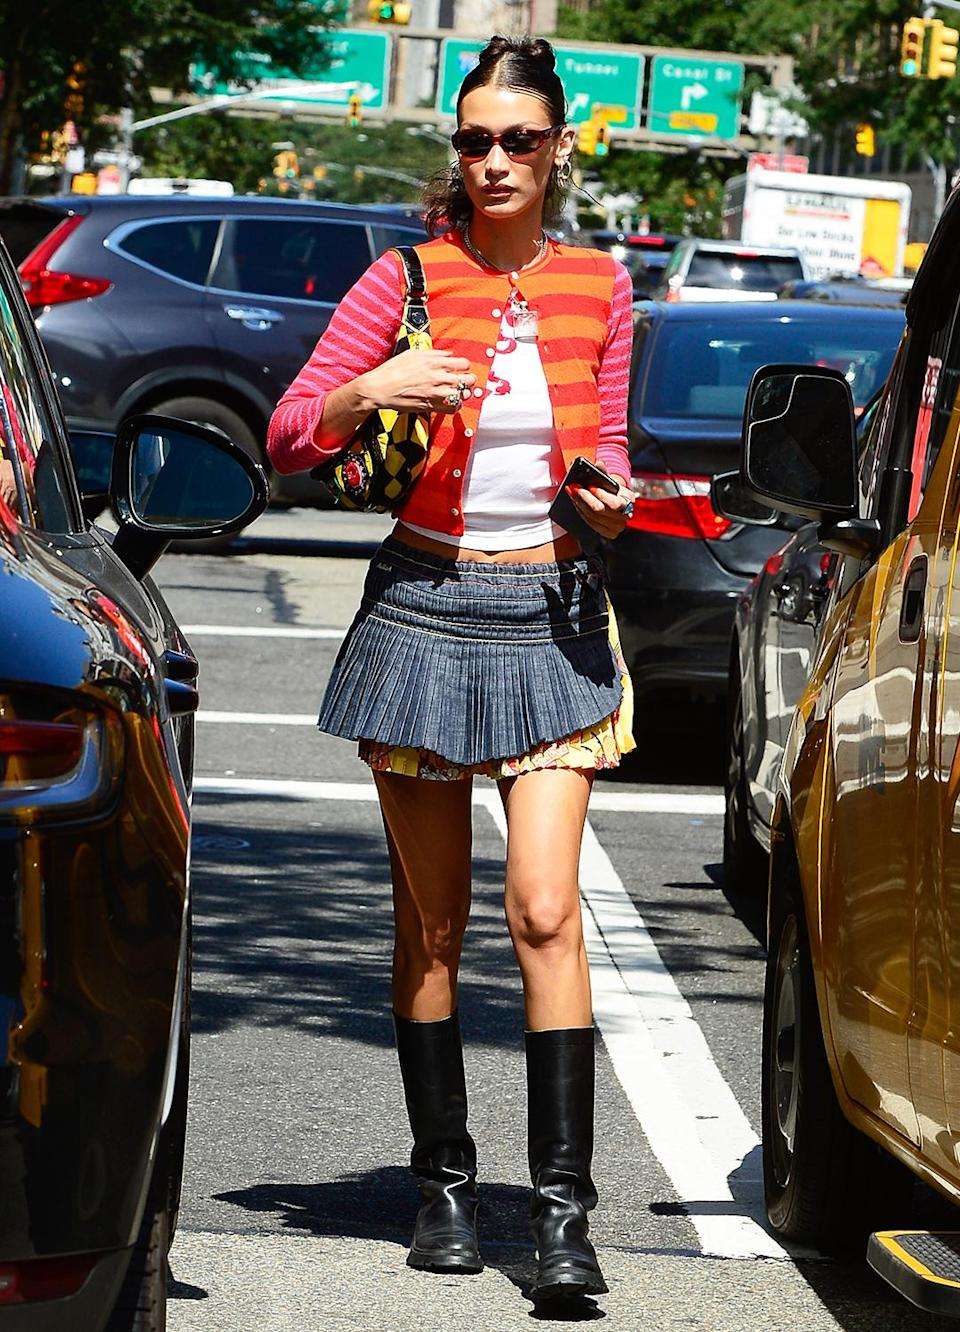 <p>Bella Hadid turns heads in a colorful ensemble as she weaves through the streets of Soho.</p>